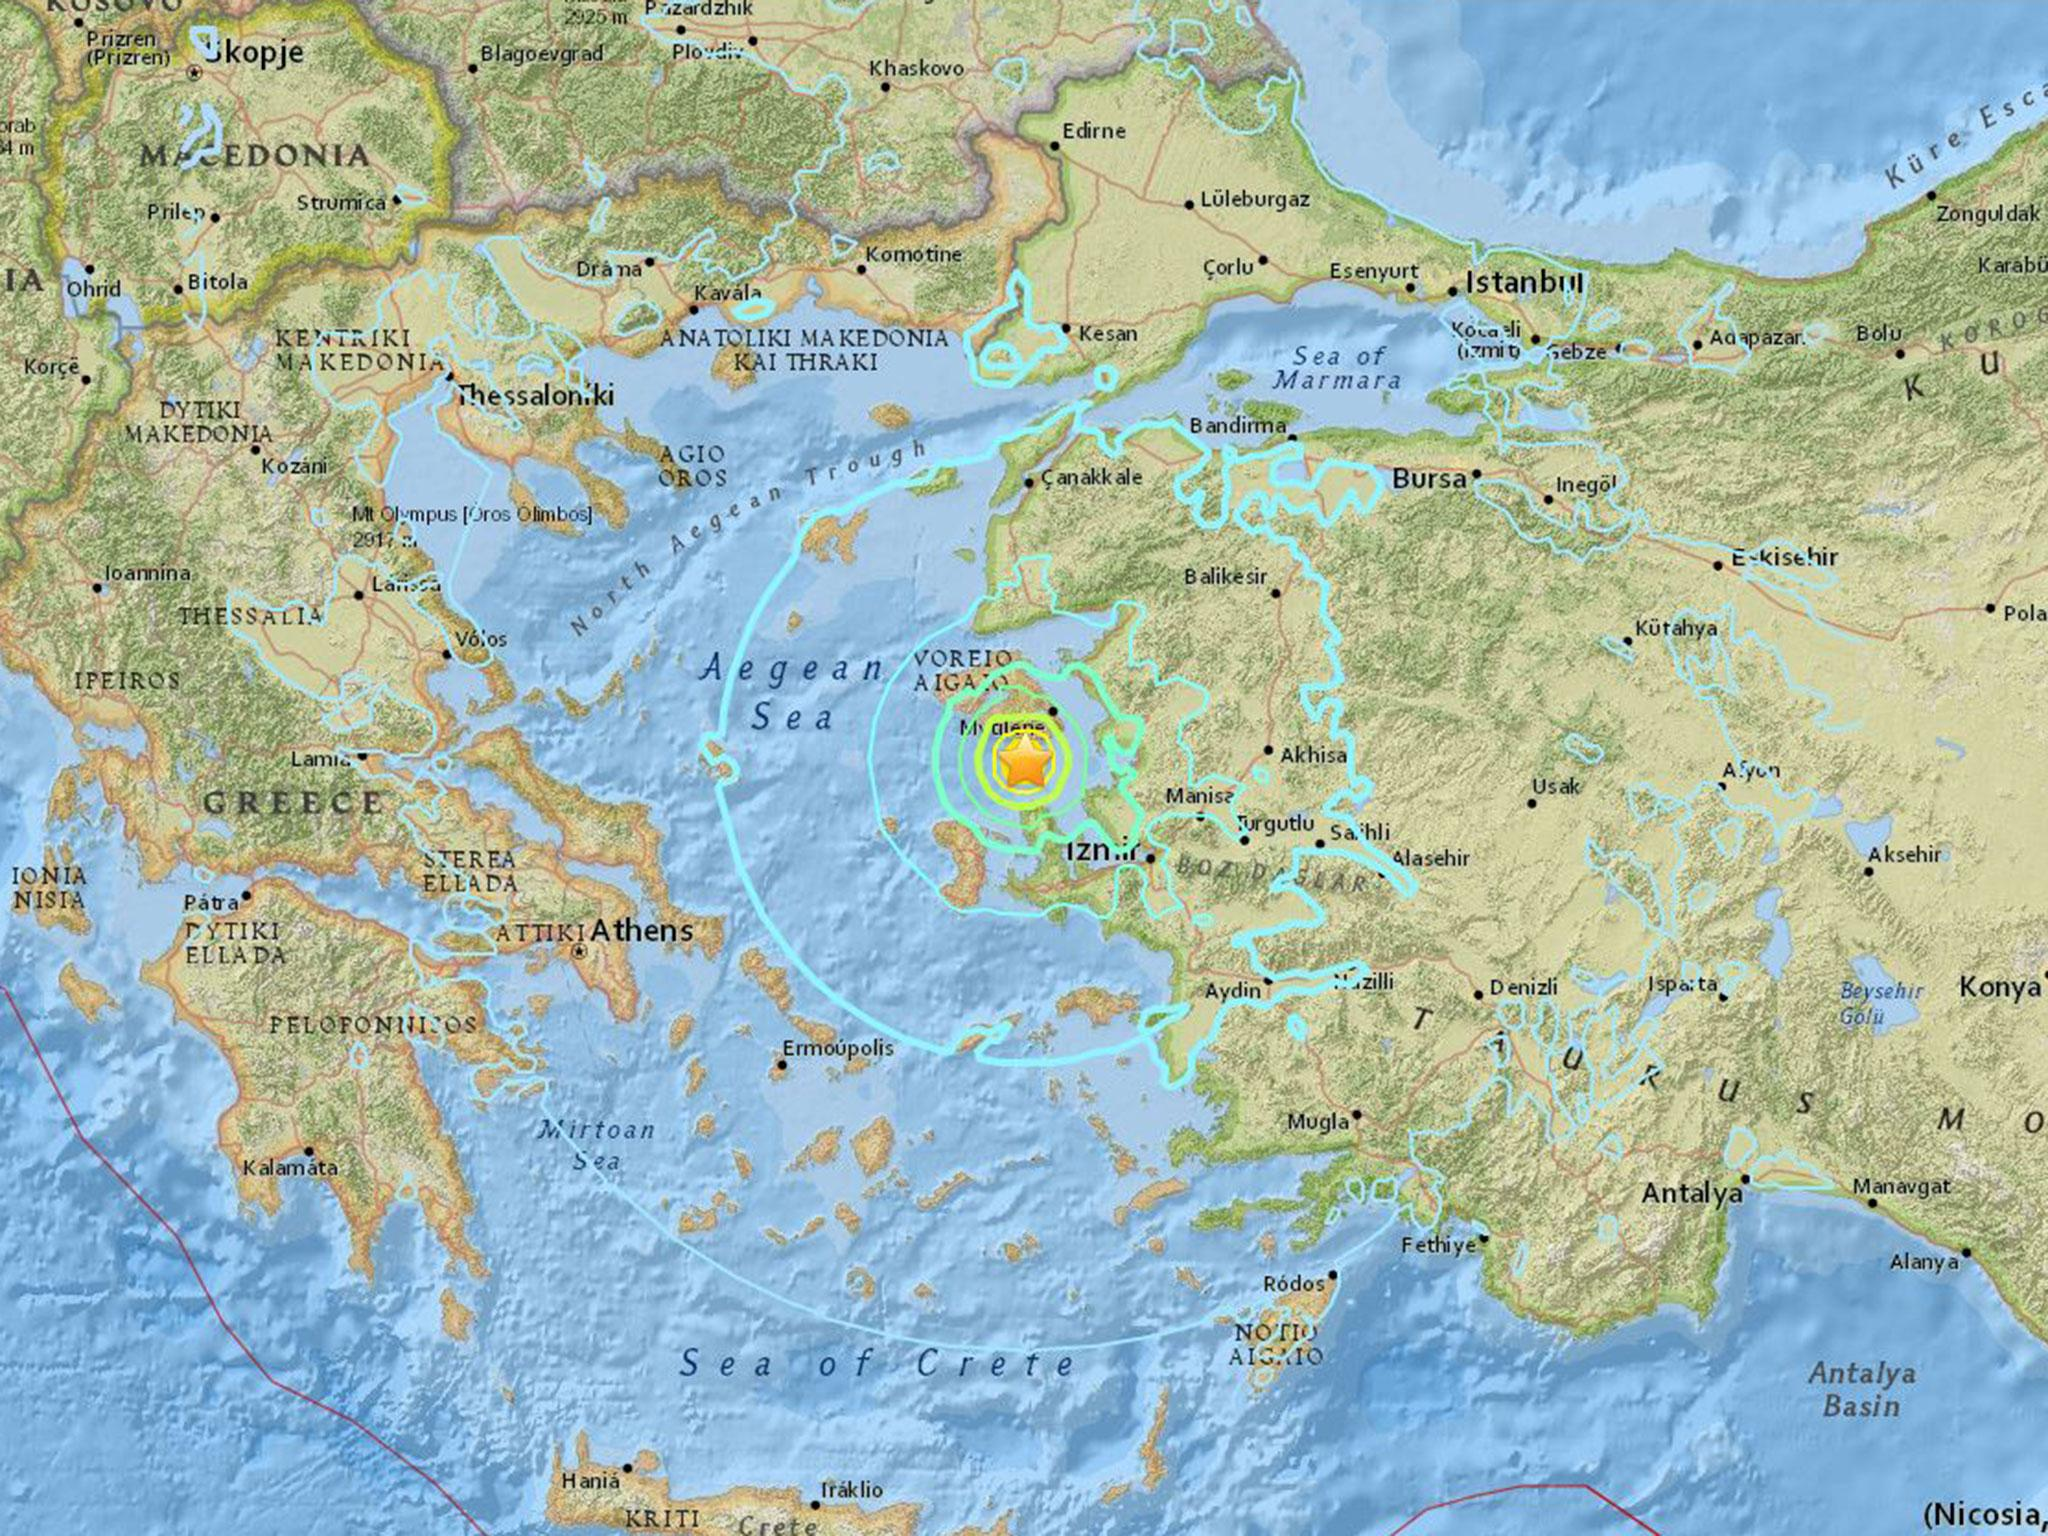 Turkey earthquake magnitude 63 seismic shock strikes western coast turkey earthquake magnitude 63 seismic shock strikes western coast and large greek island the independent gumiabroncs Image collections